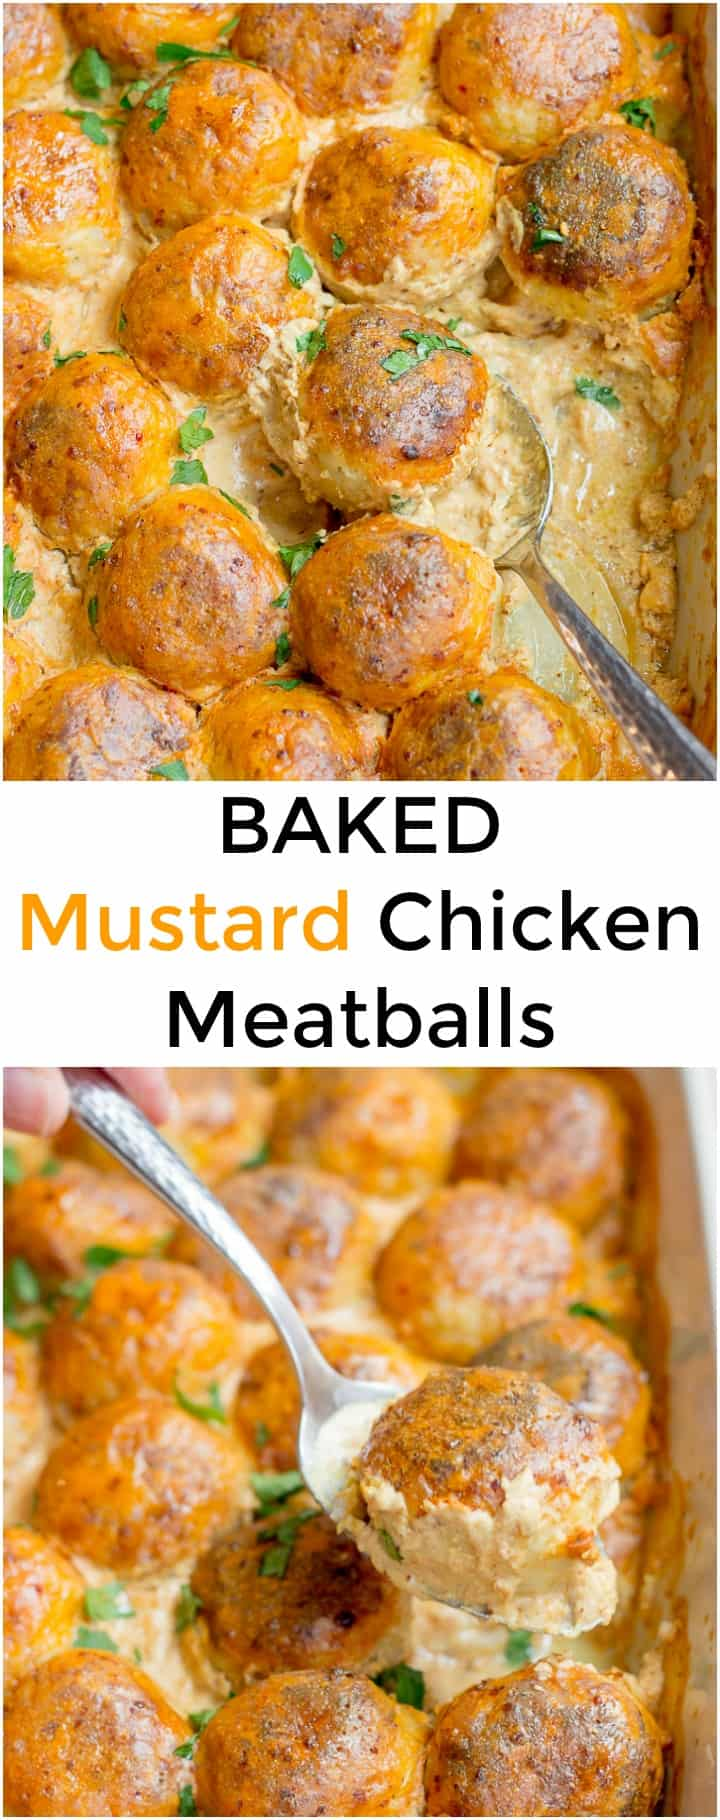 Collage image of Baked Mustard Chicken Meatballs